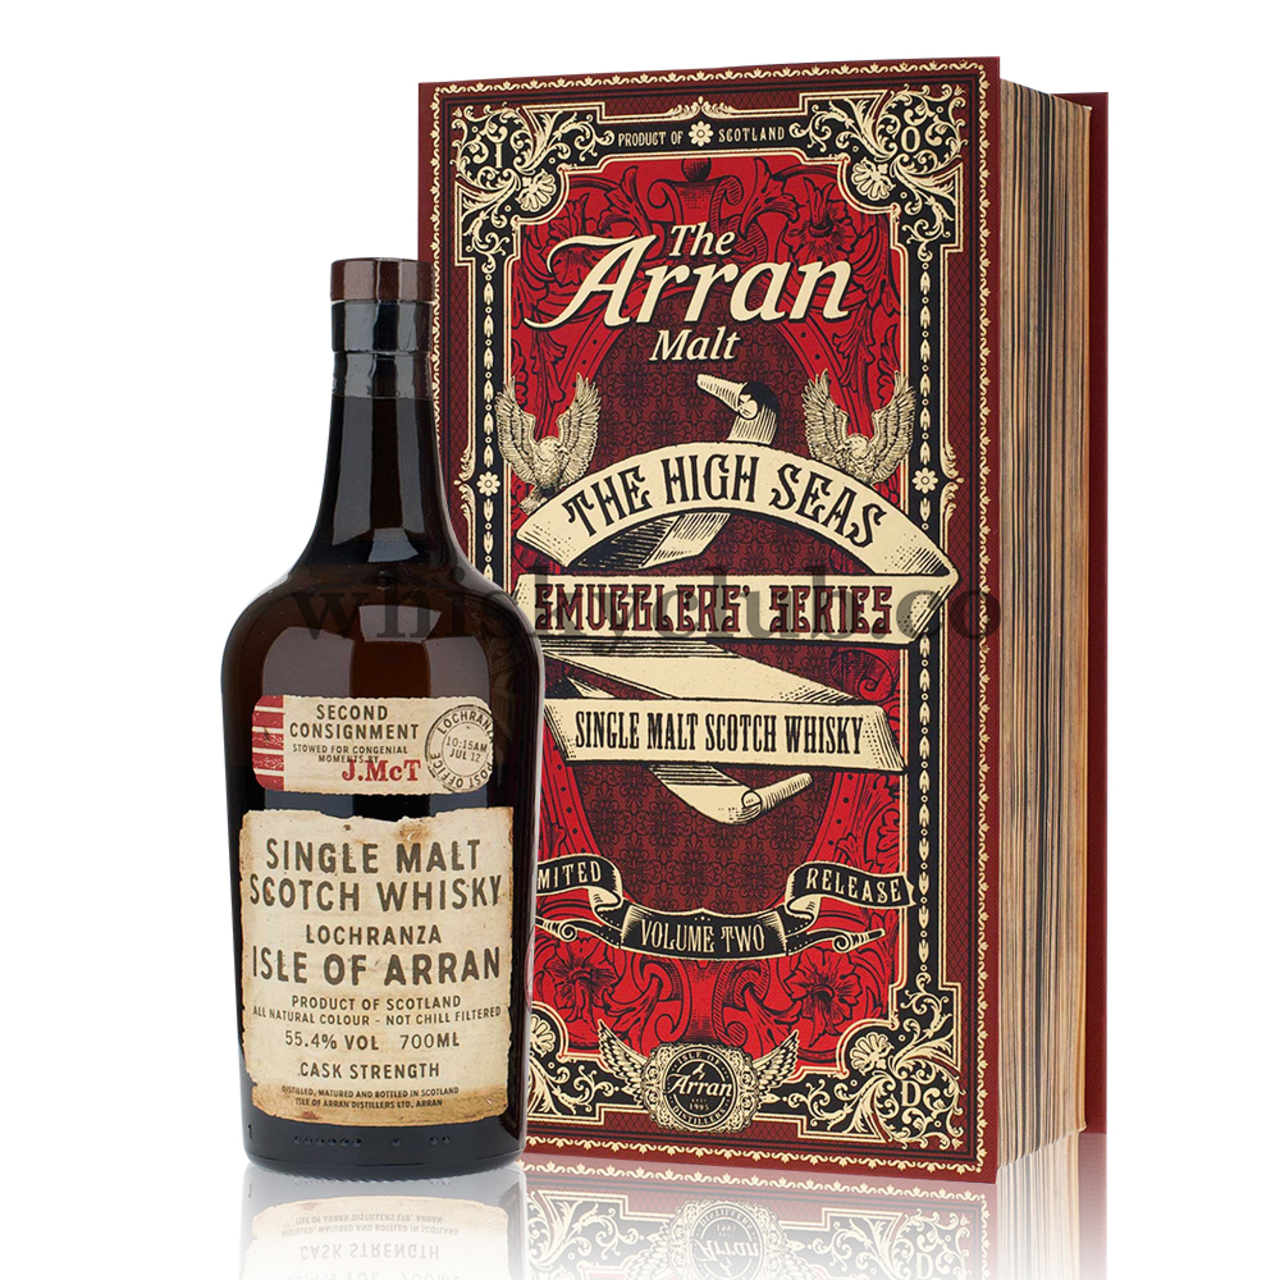 01 375 1 the arran malt the high seas smugglers series limited release volume two single malt scotch whisky lochranza isle of arran